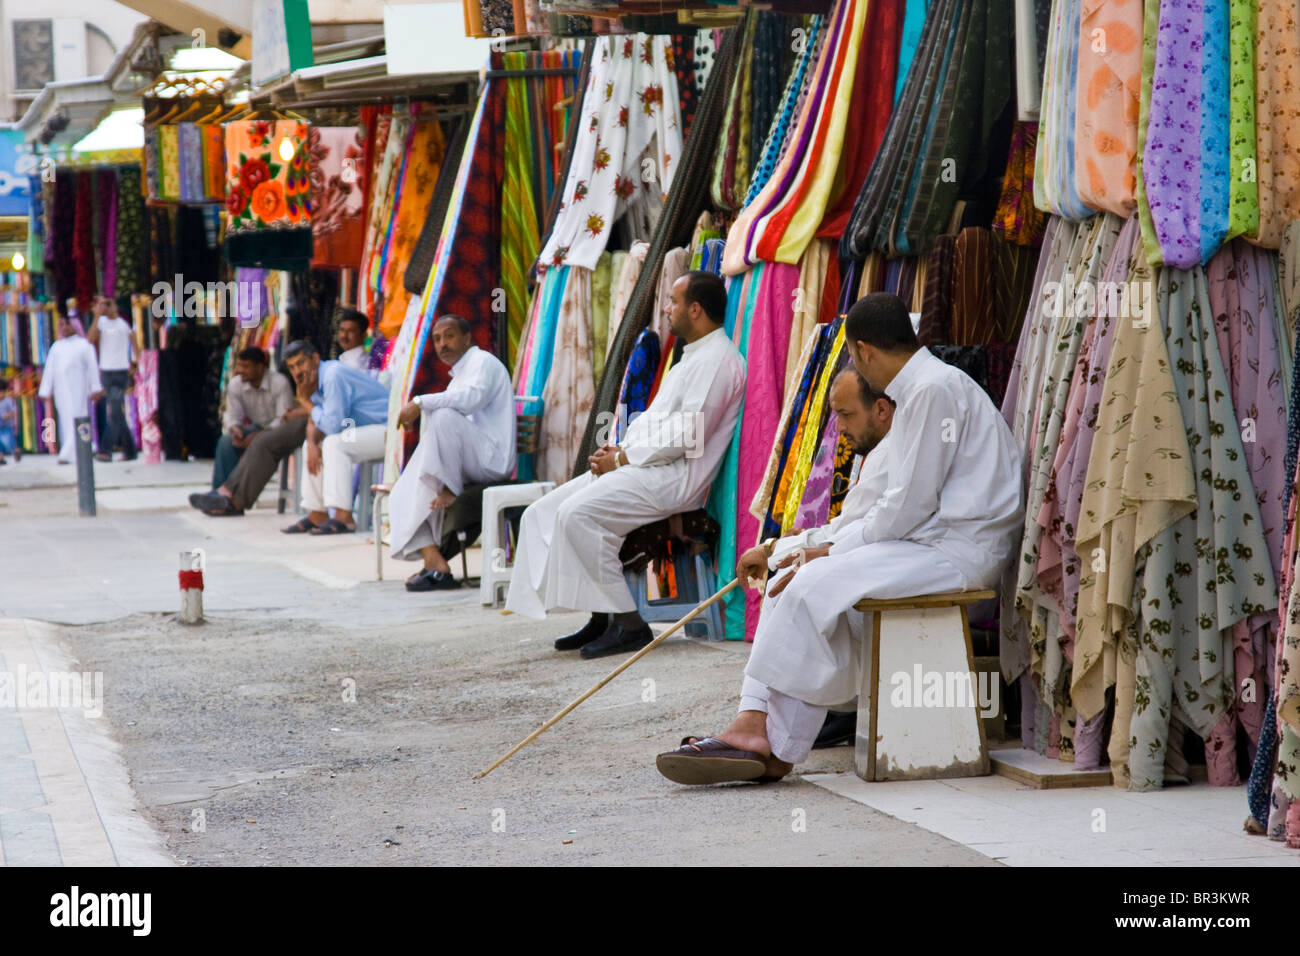 Textile vendors in the Old Souk in Kuwait City, Kuwait - Stock Image